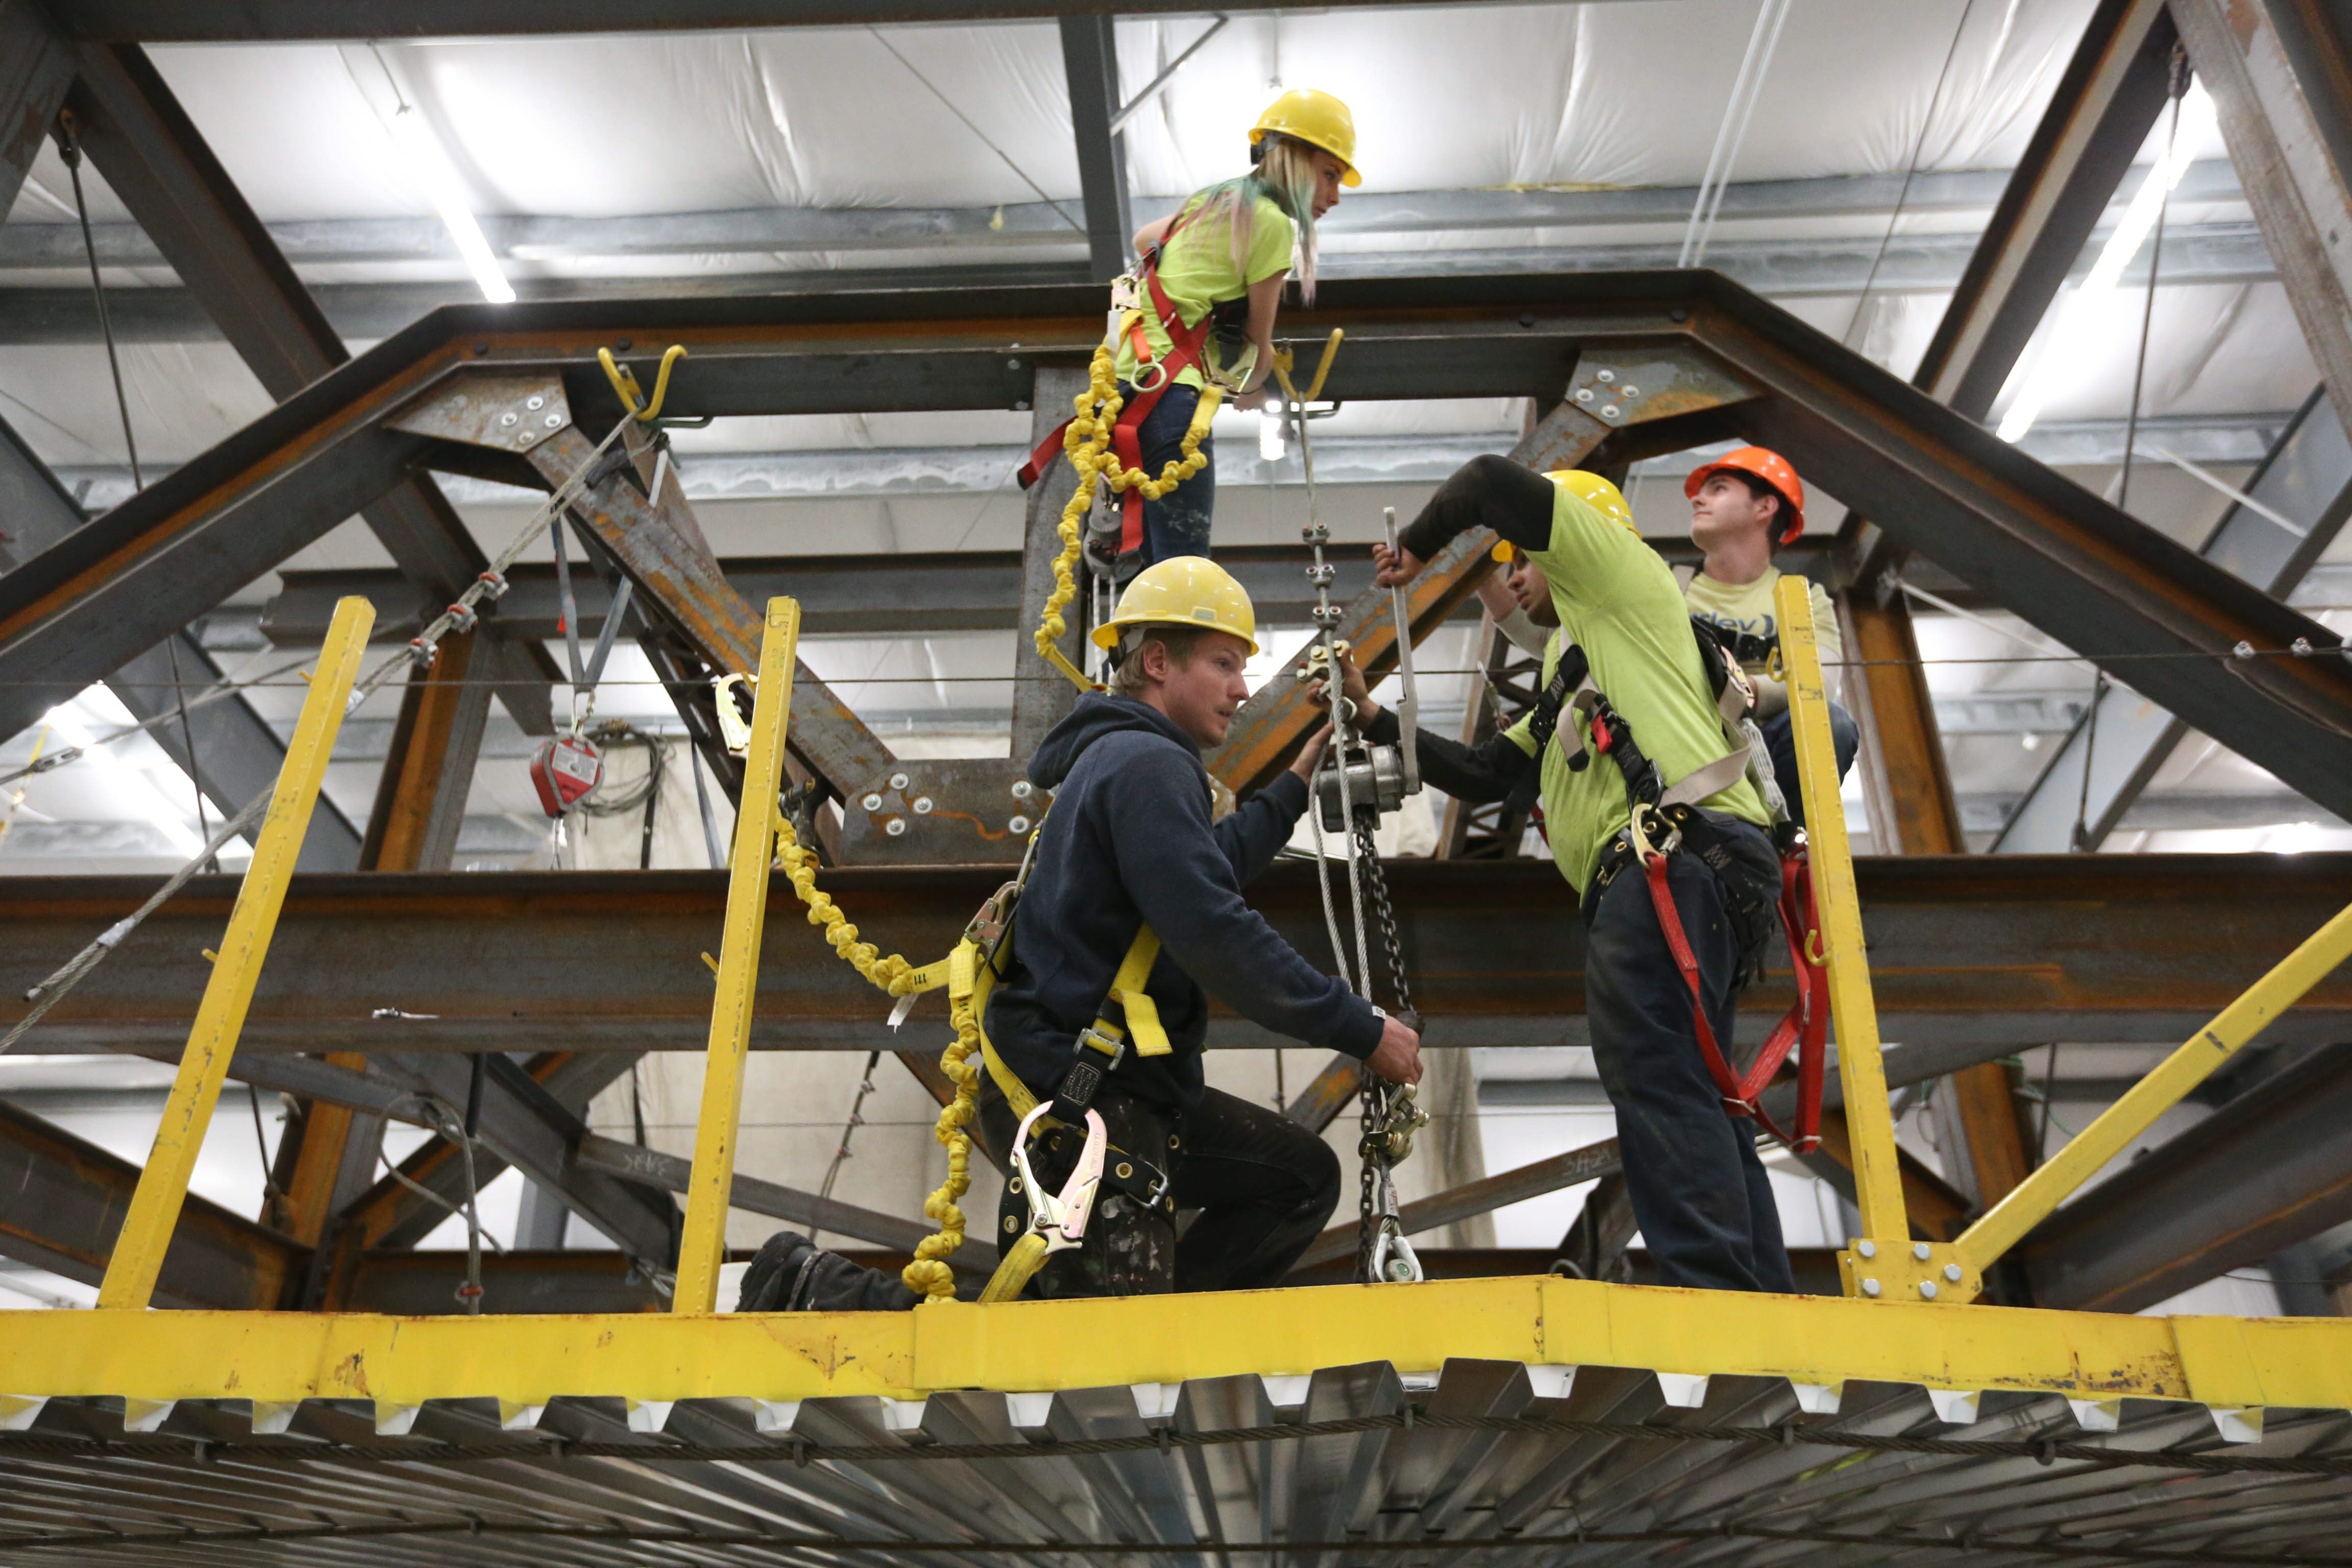 vocational training school opens new educational center the kristina rogers on upper level miguel albarran and rich roehm show off their skills at the ribbon cutting of the finishing trades institute of wny